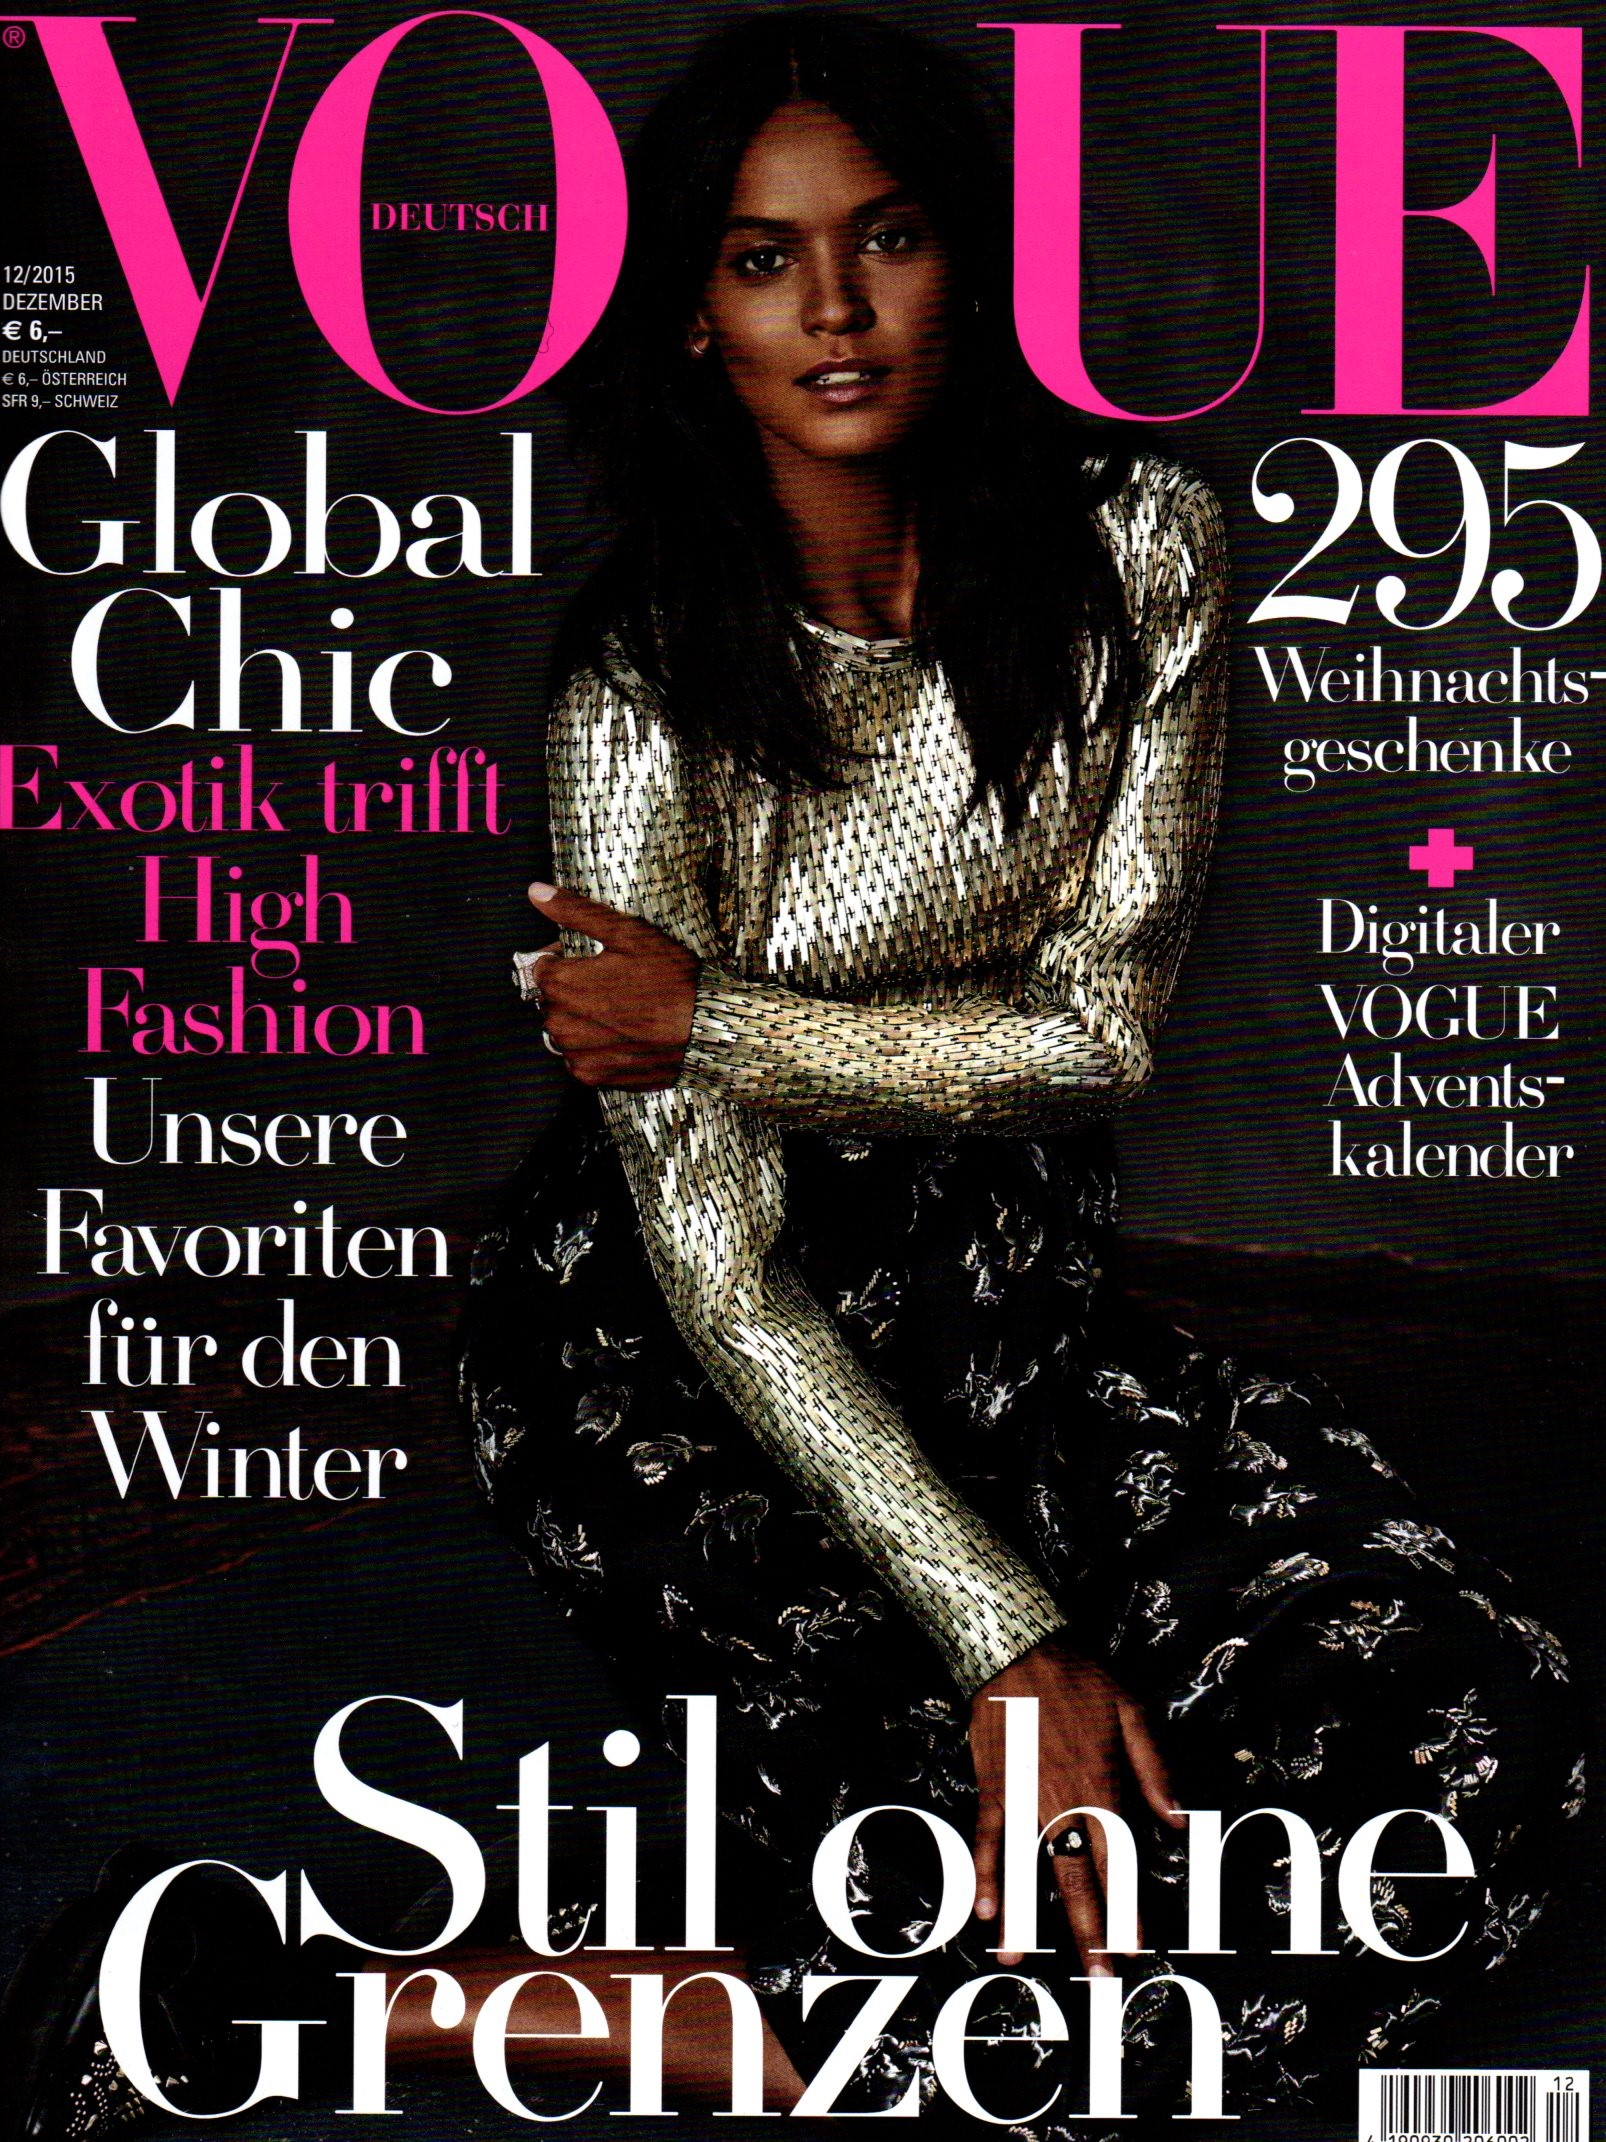 VOGUE (german) Decmbr 2015 cover